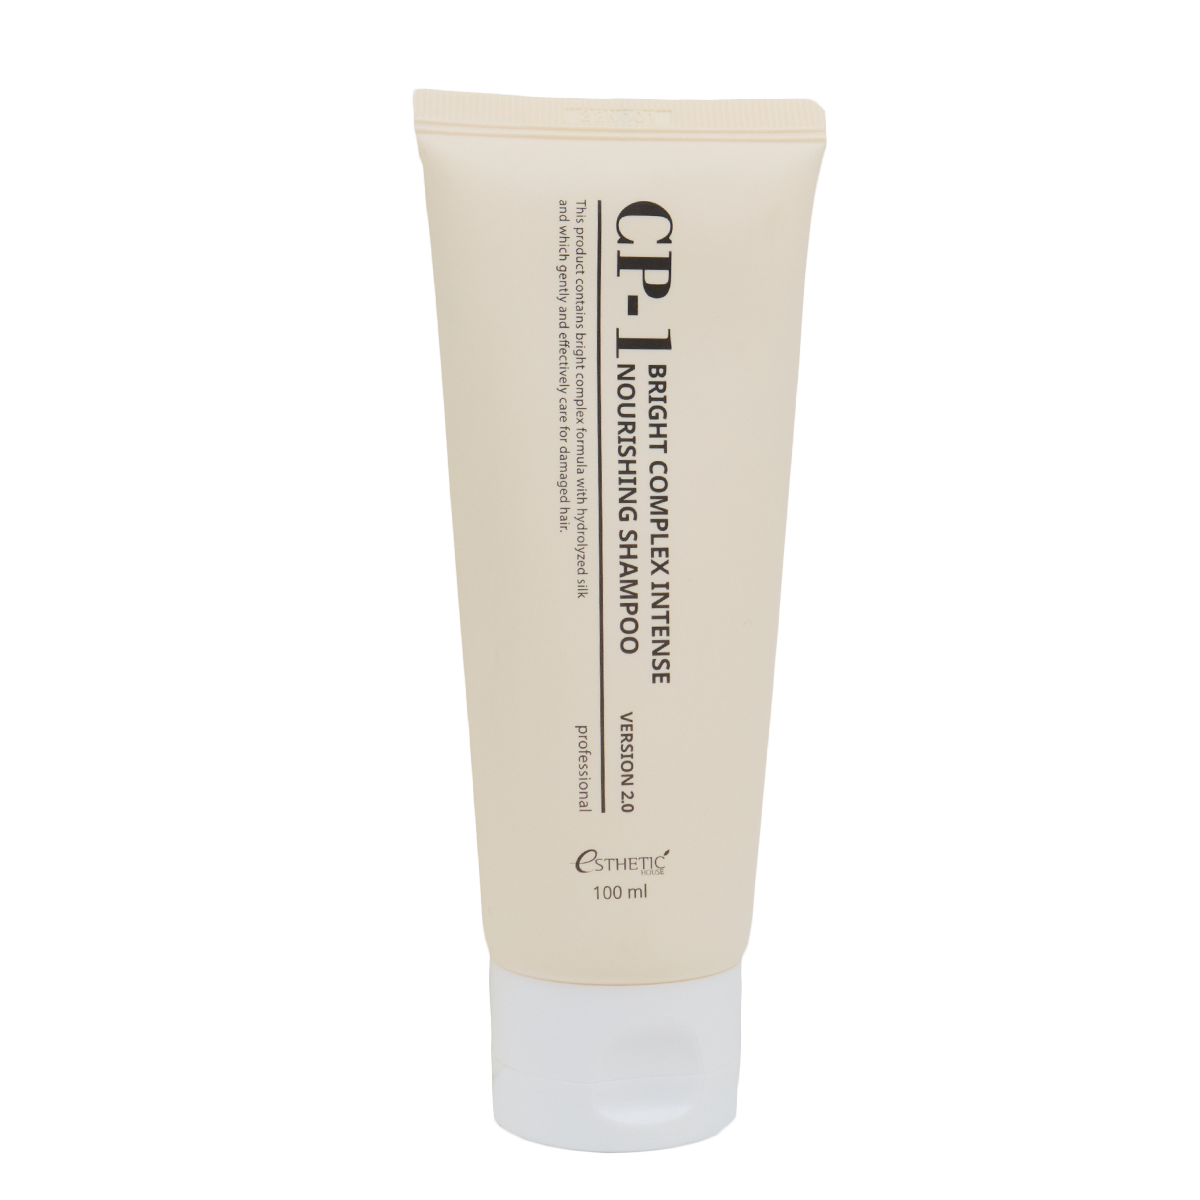 Шампуни Протеиновый шампунь для волос CP-1 BC Intense Nourishing Shampoo Version 2.0 100мл import_files_20_202b90d6ec3711e981103408042974b1_1e753811ec3911e981103408042974b1.png